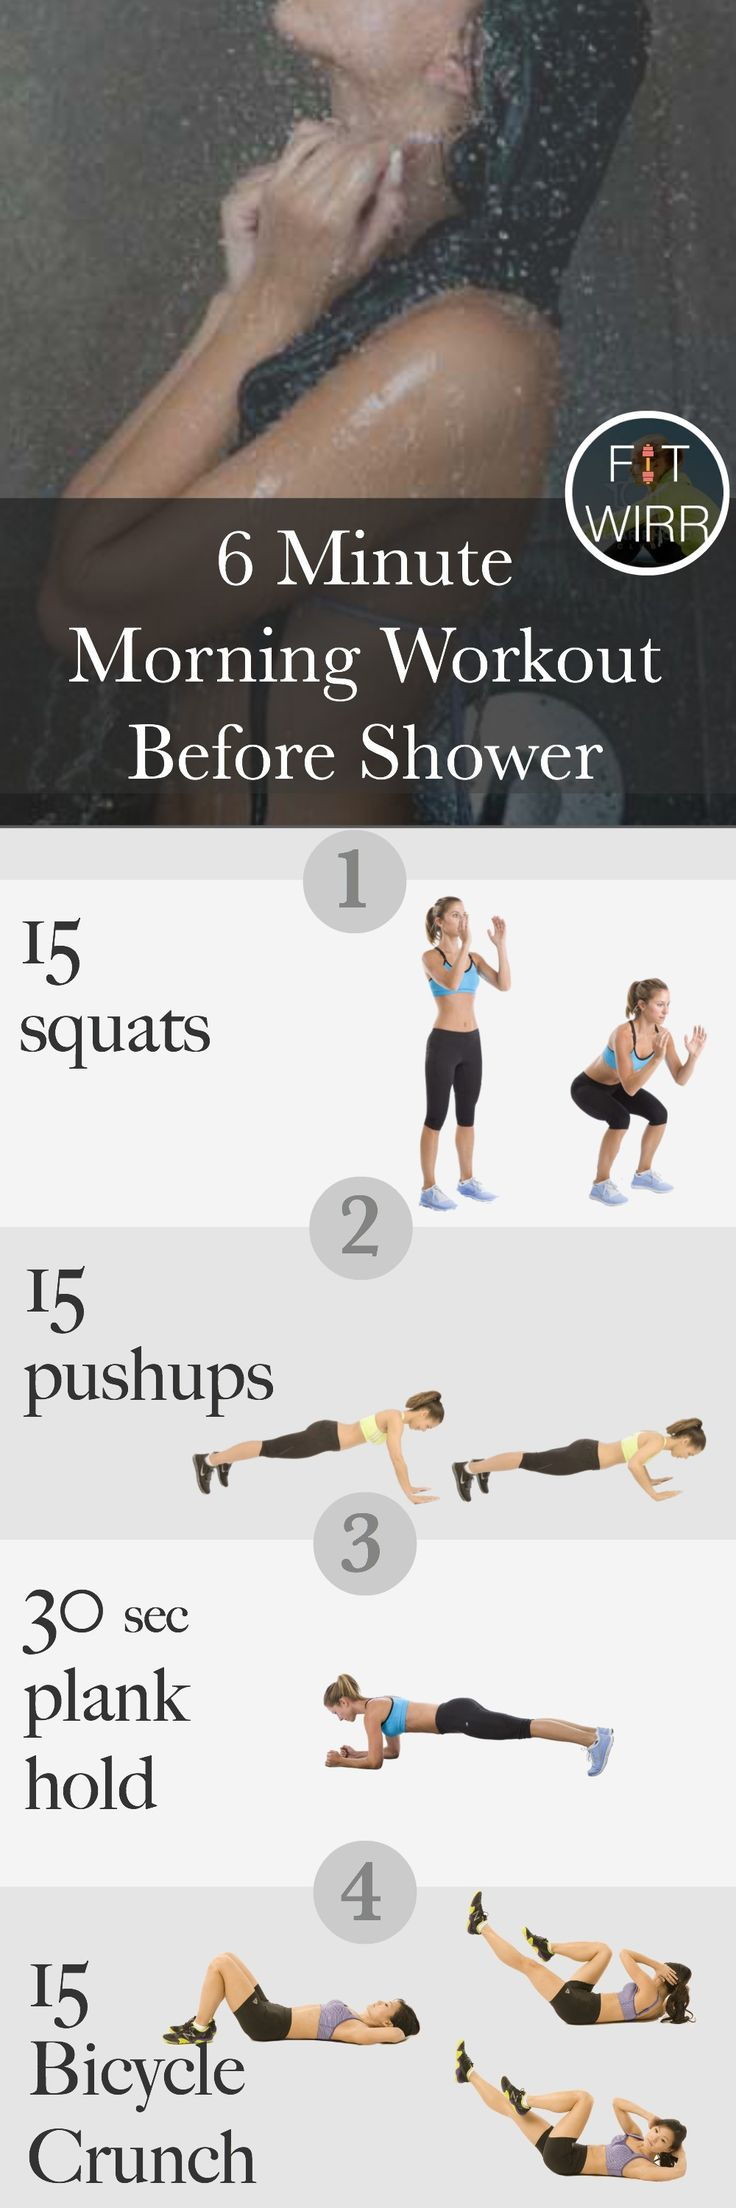 6 Minute Mini Morning Workout to Crush Calories and Melt Fat